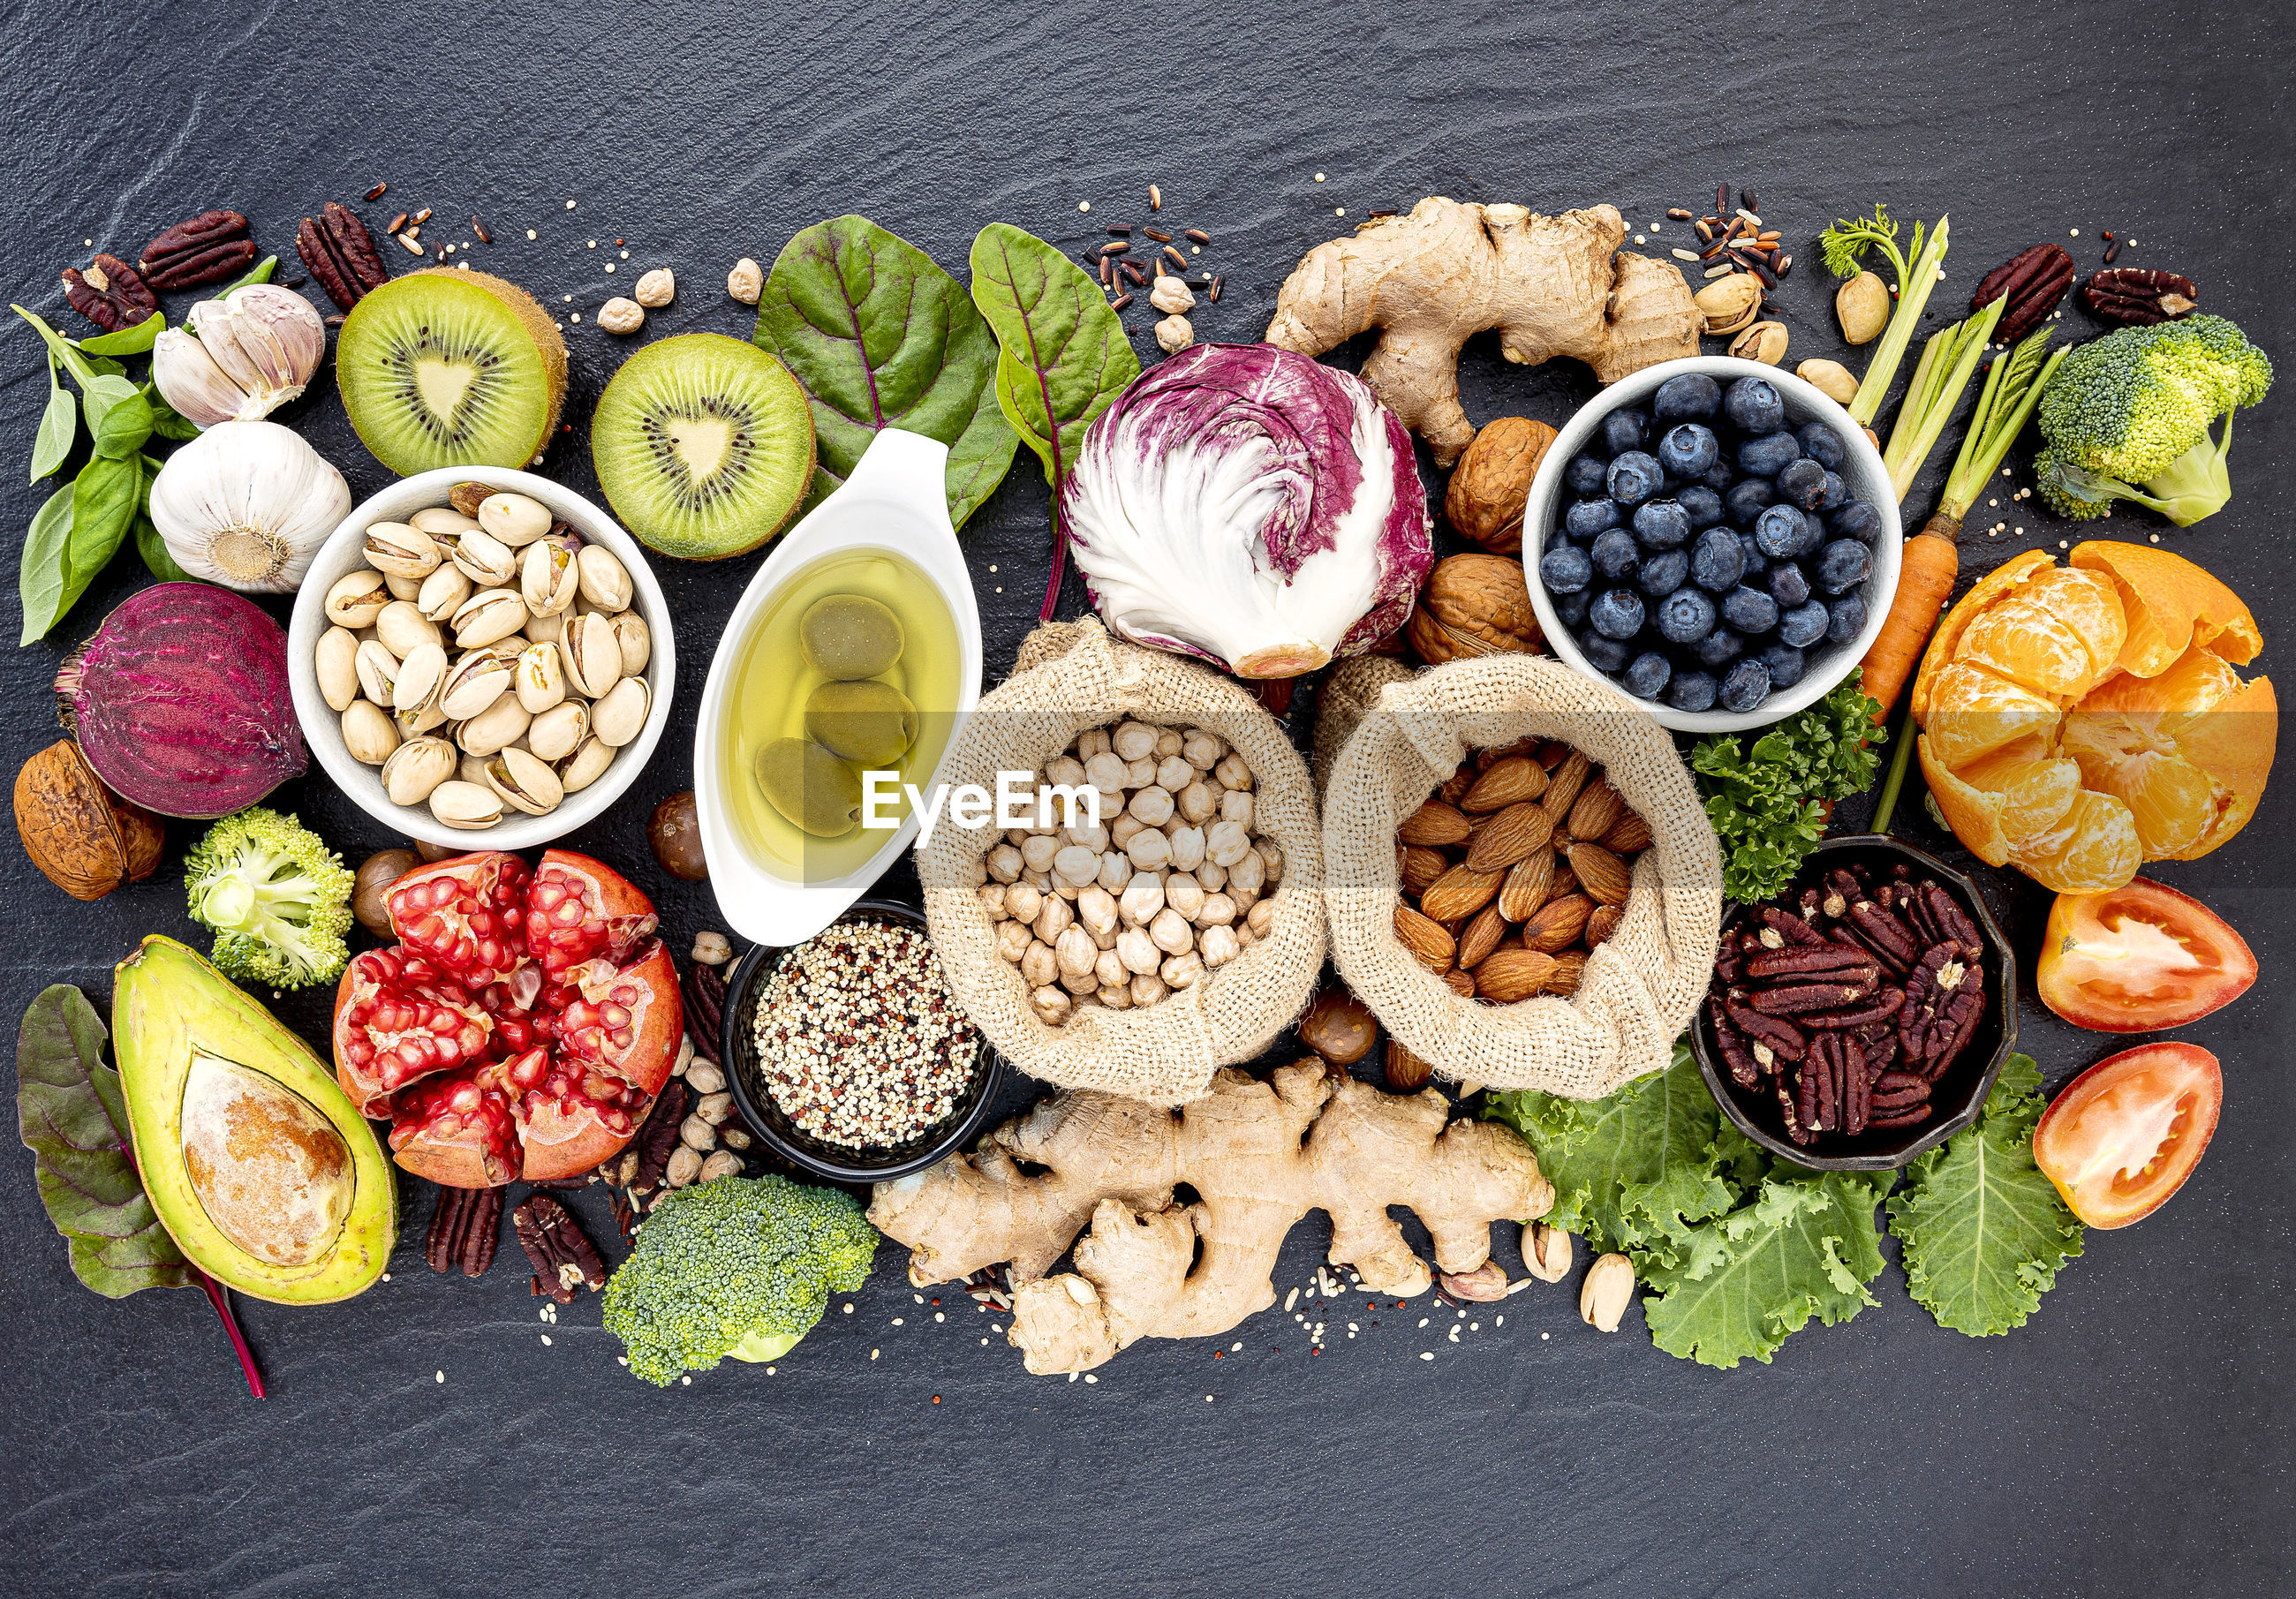 HIGH ANGLE VIEW OF VARIOUS FRUITS IN BOWL WITH VEGETABLES